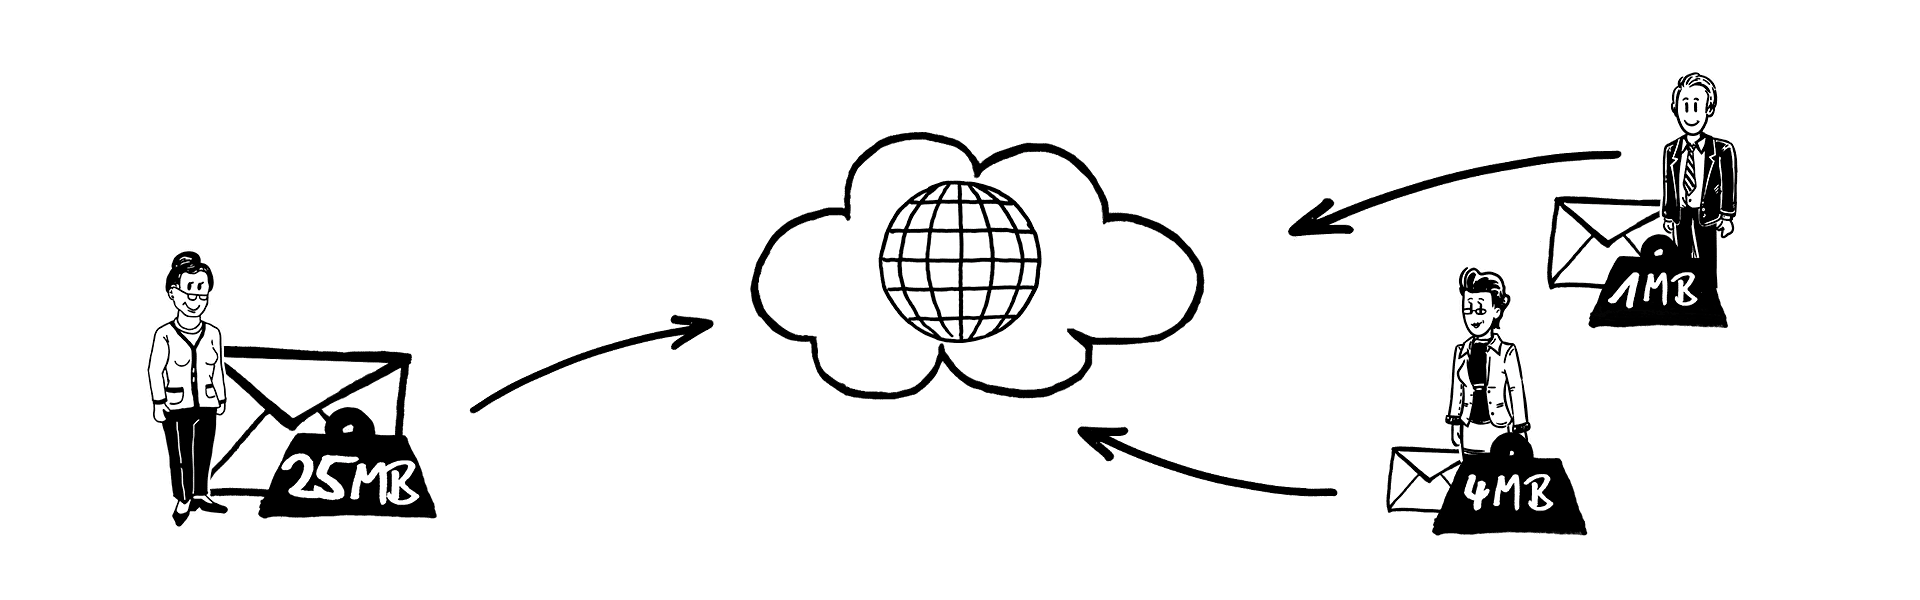 message routing message size policies